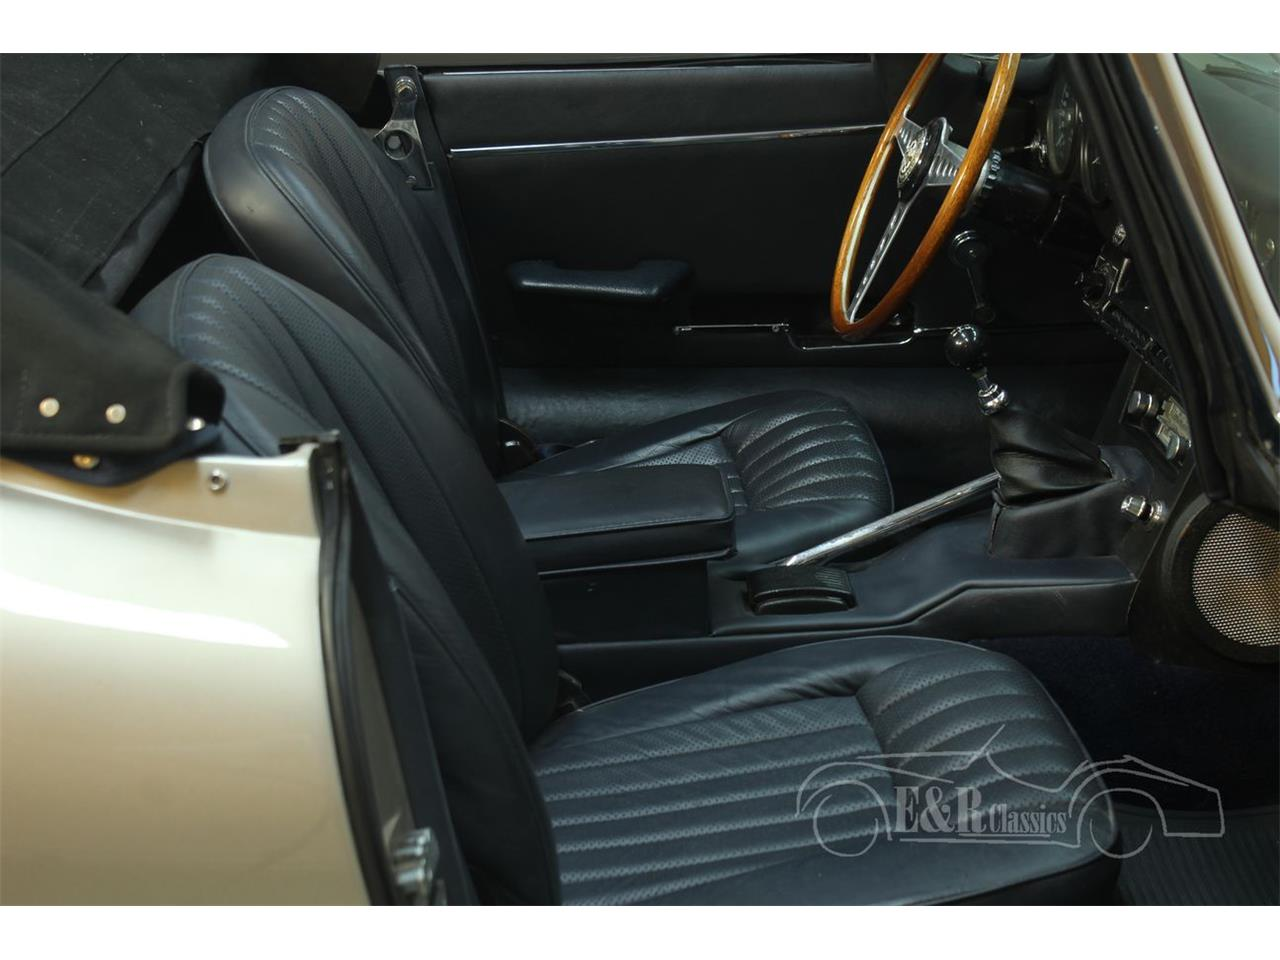 Large Picture of 1970 Jaguar E-Type Offered by E & R Classics - PH40